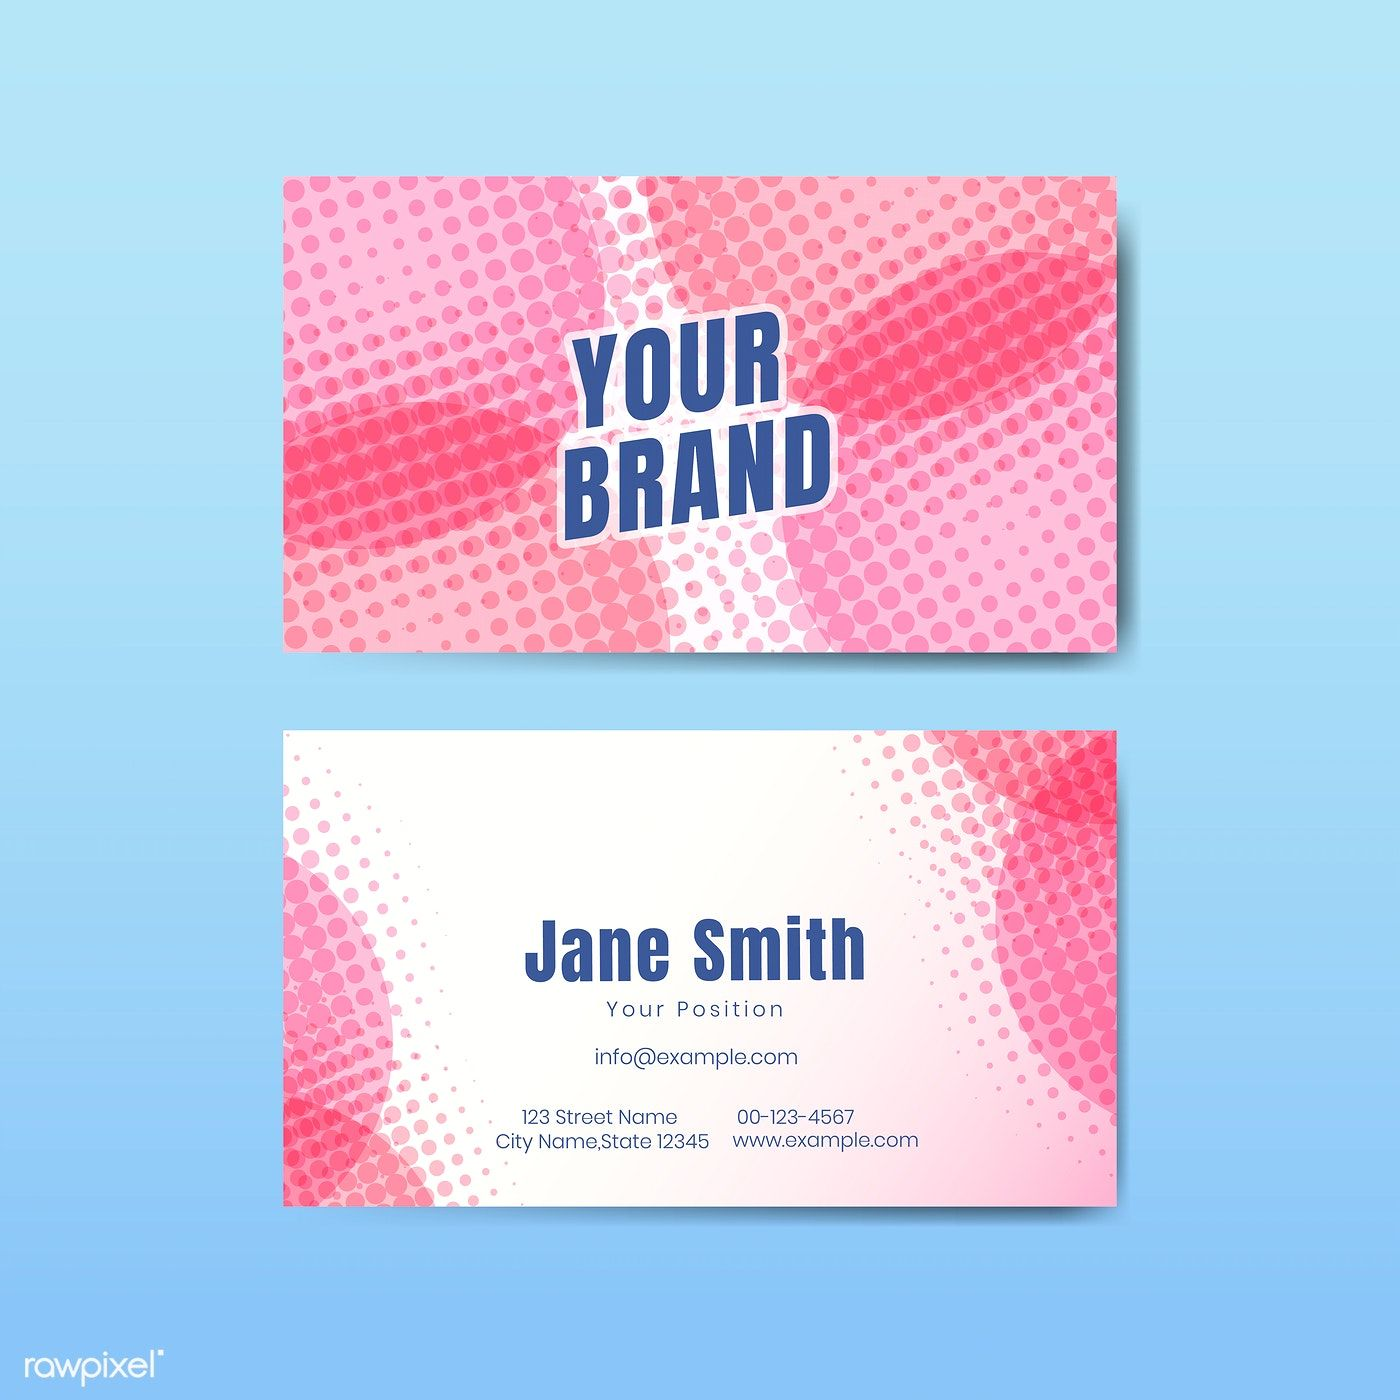 Download Premium Vector Of Business Card Template Vector